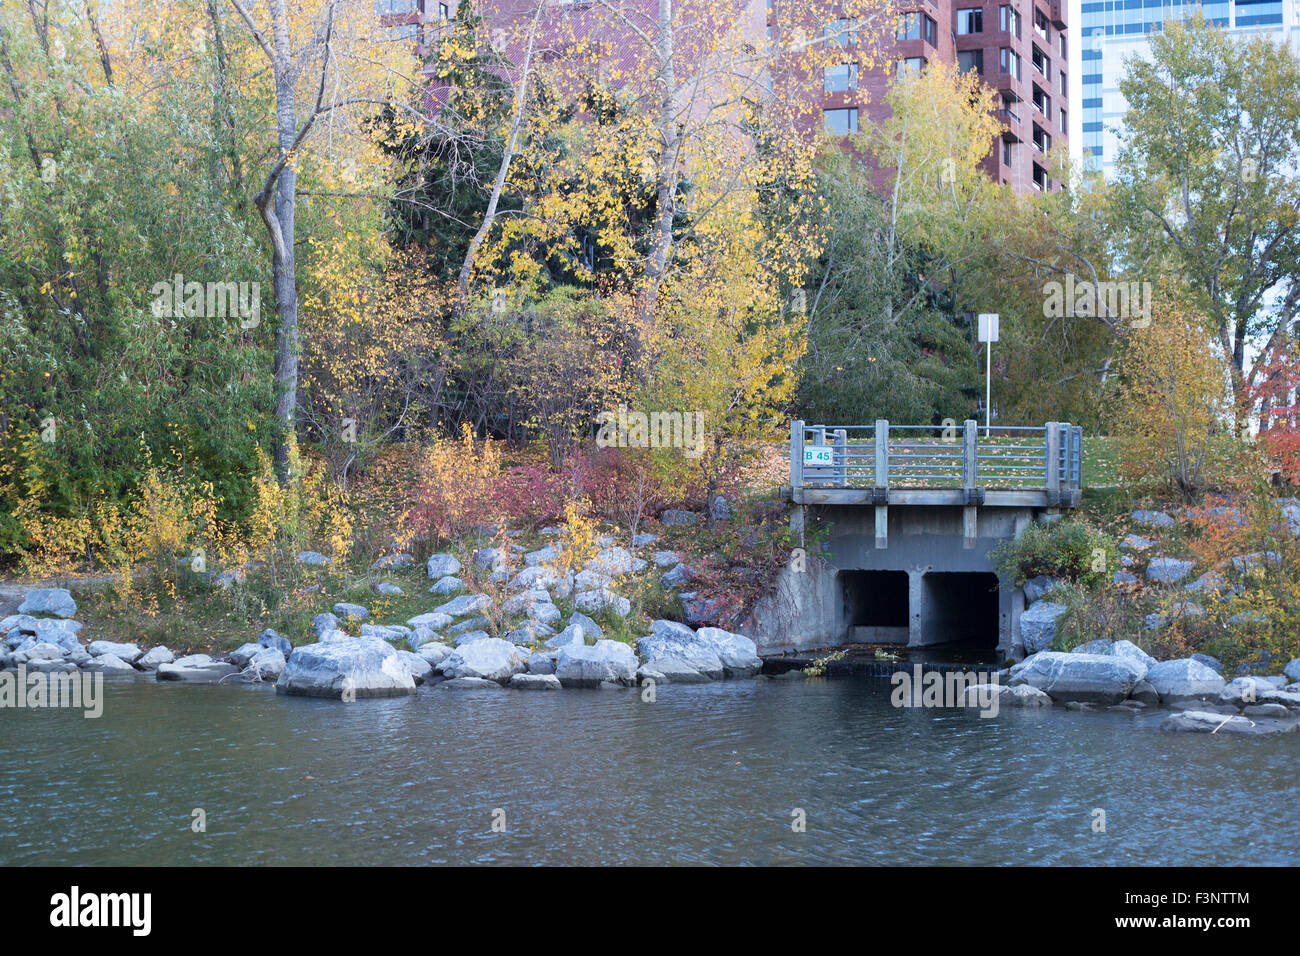 Stormwater outfall, the exit point from the Calgary's storm drainage system through an underground pipe system - Stock Image